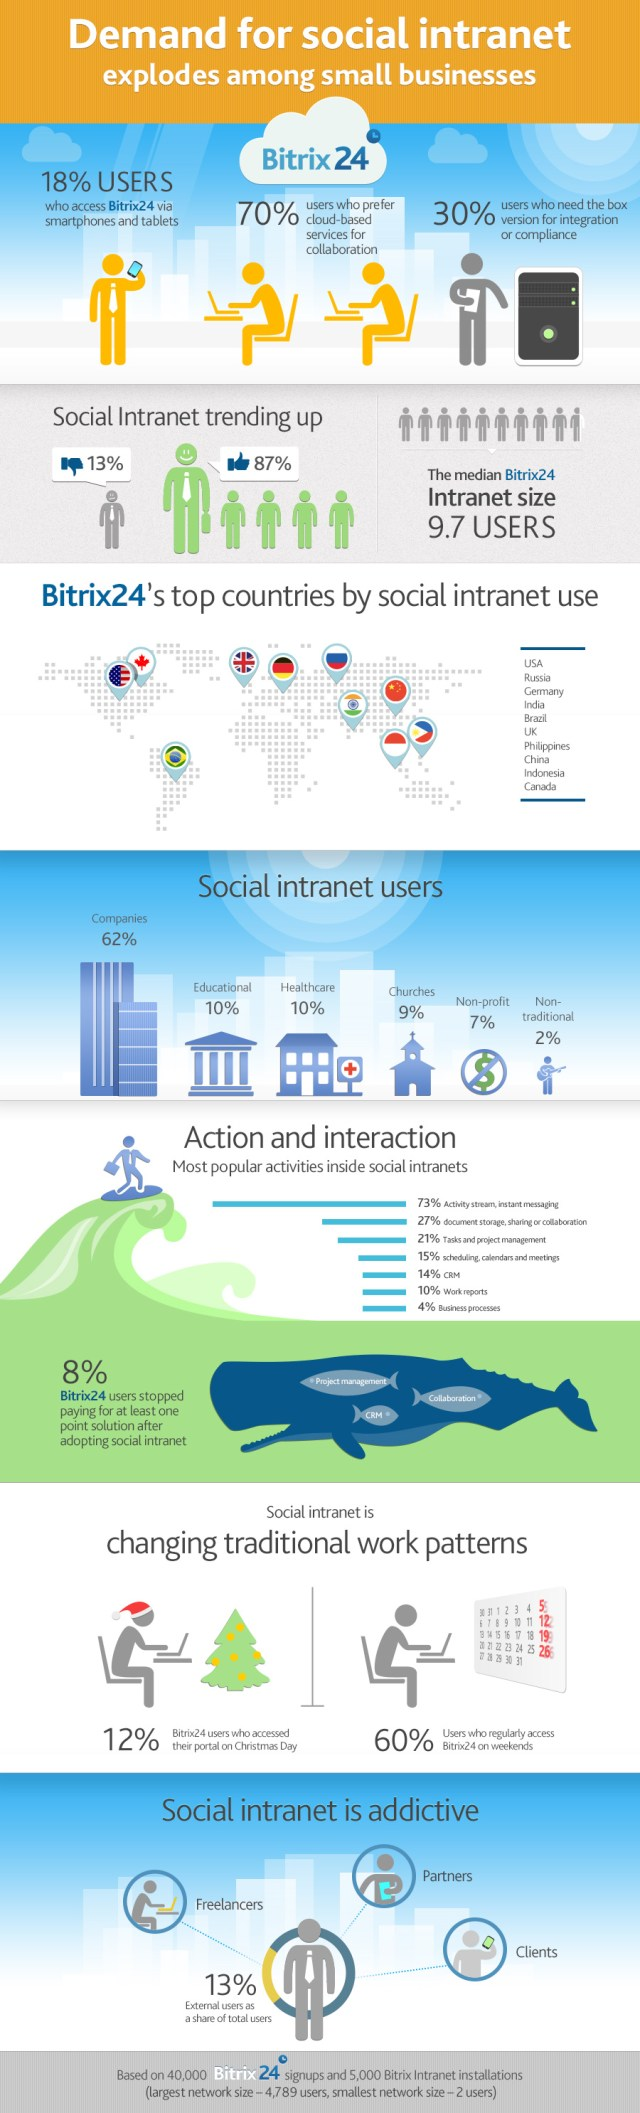 Social Intranet and Small Businesses